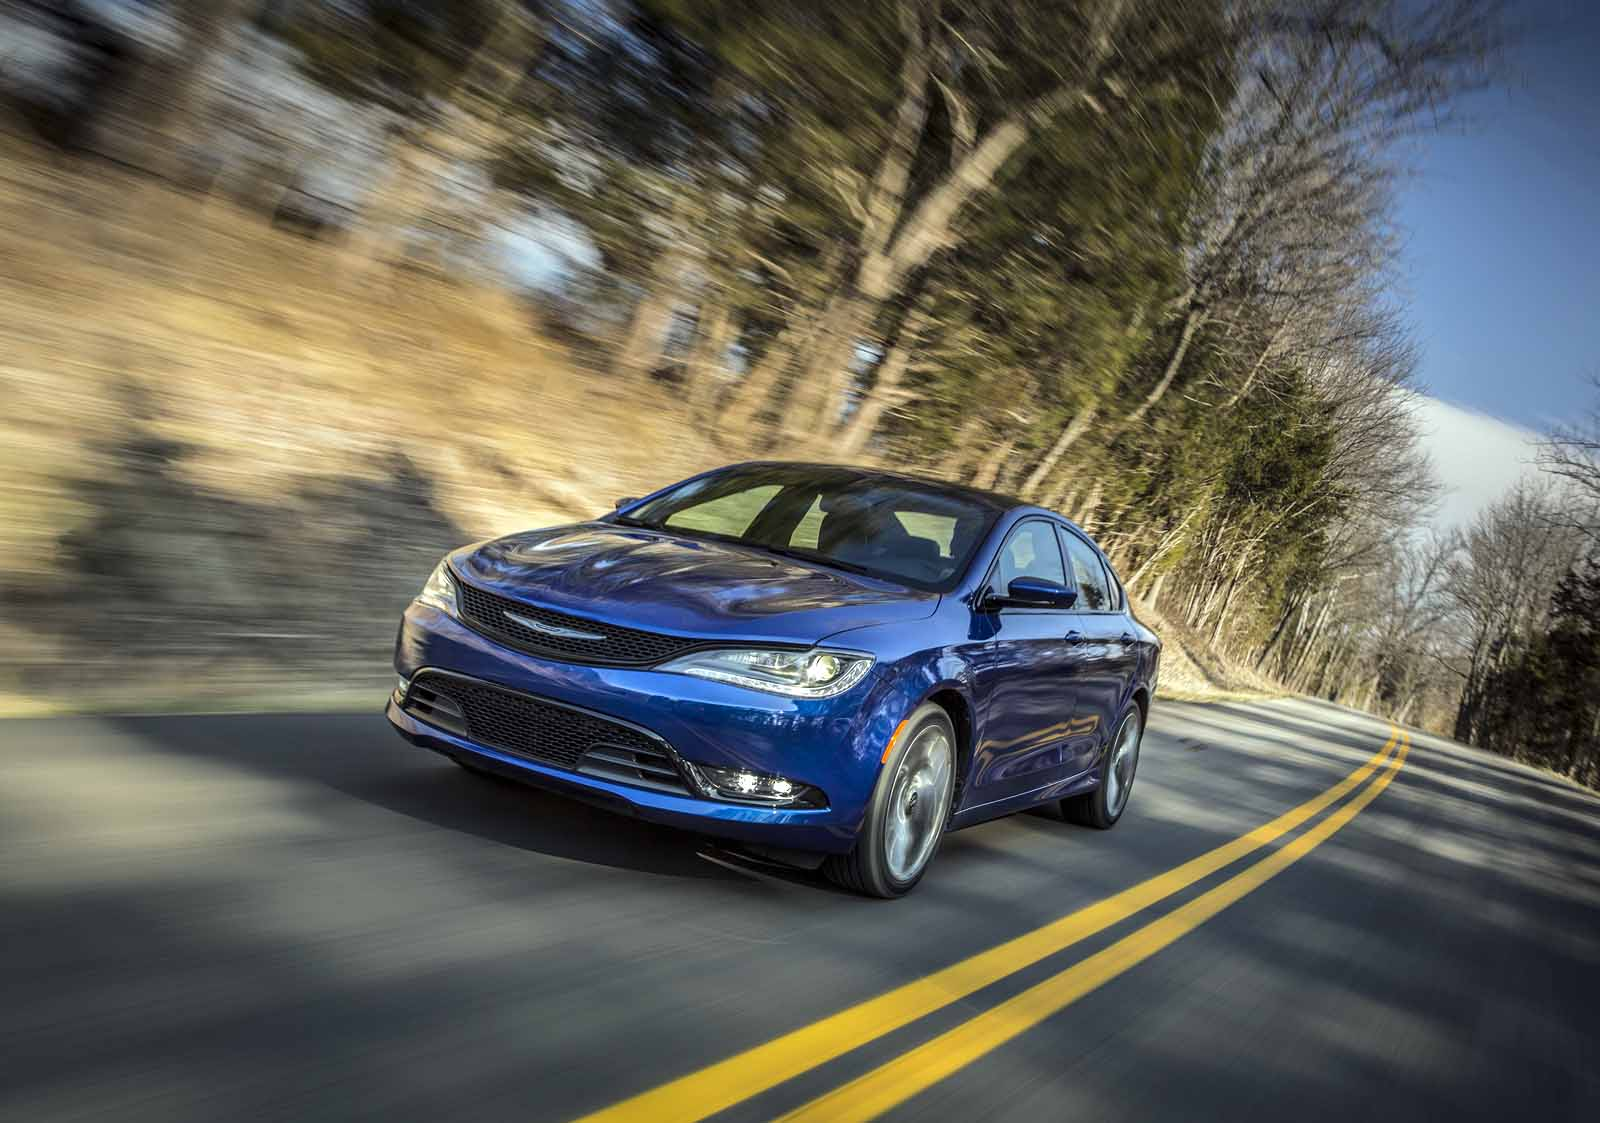 Chrysler 200 Mpg >> 2016 Chrysler 200S Review: Why Did It Fail? - AutoGuide.com